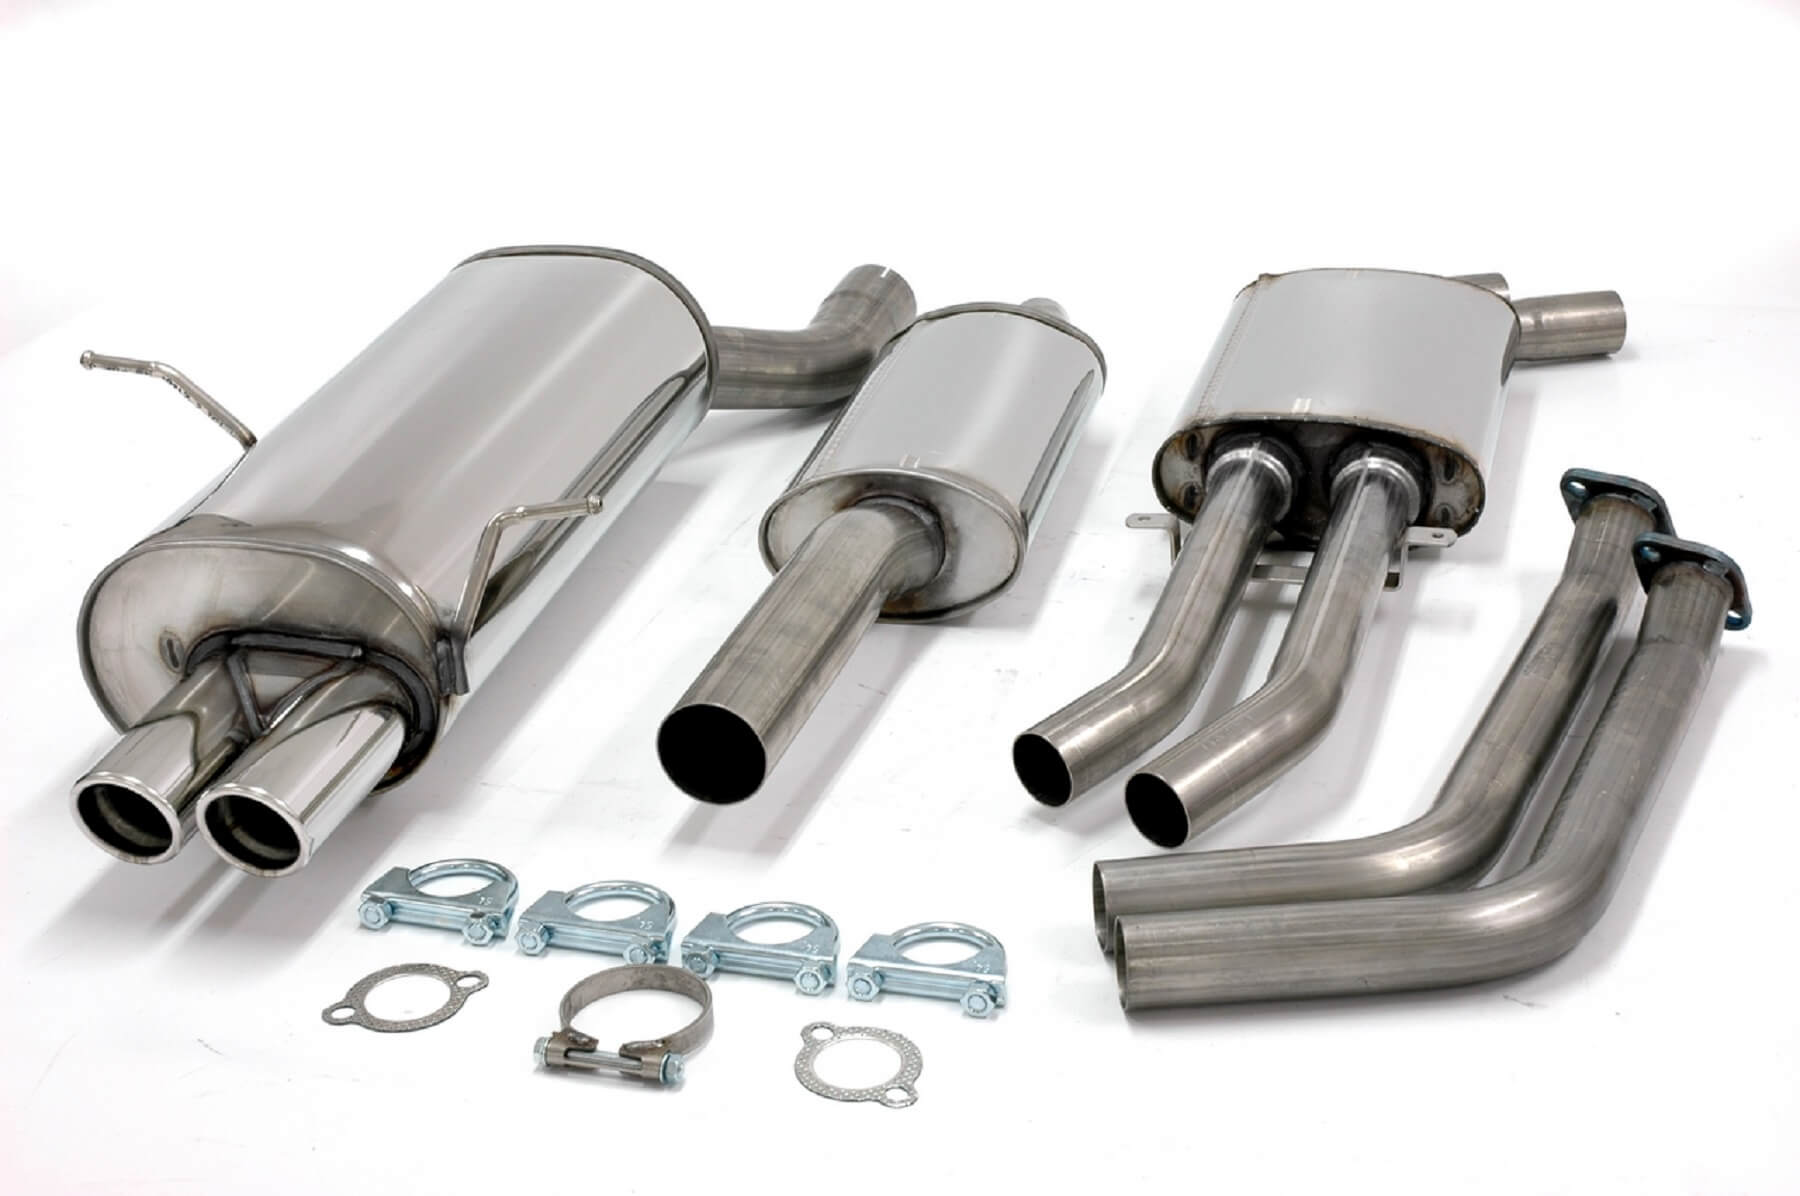 bmw 320i 325i 330i e46 jetex performance half exhaust system stainless steel with twin round 70mm tail pipes ec